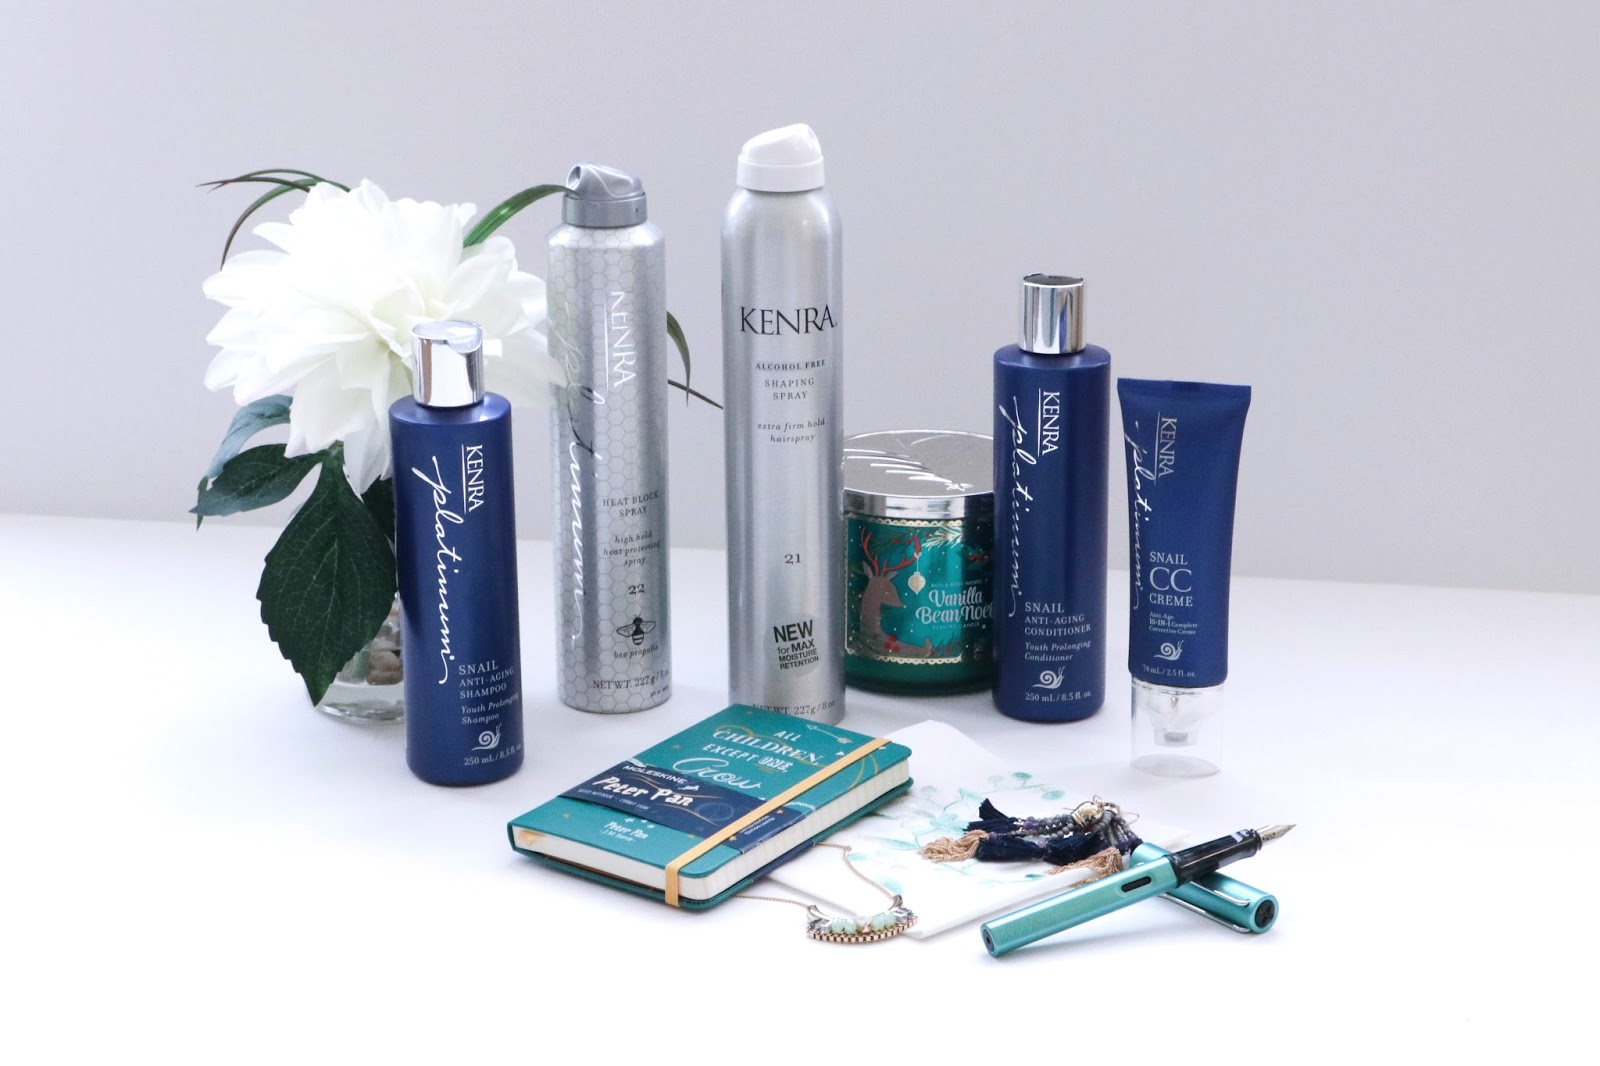 Getting fabulous hair help with Kenra Professional new products ...